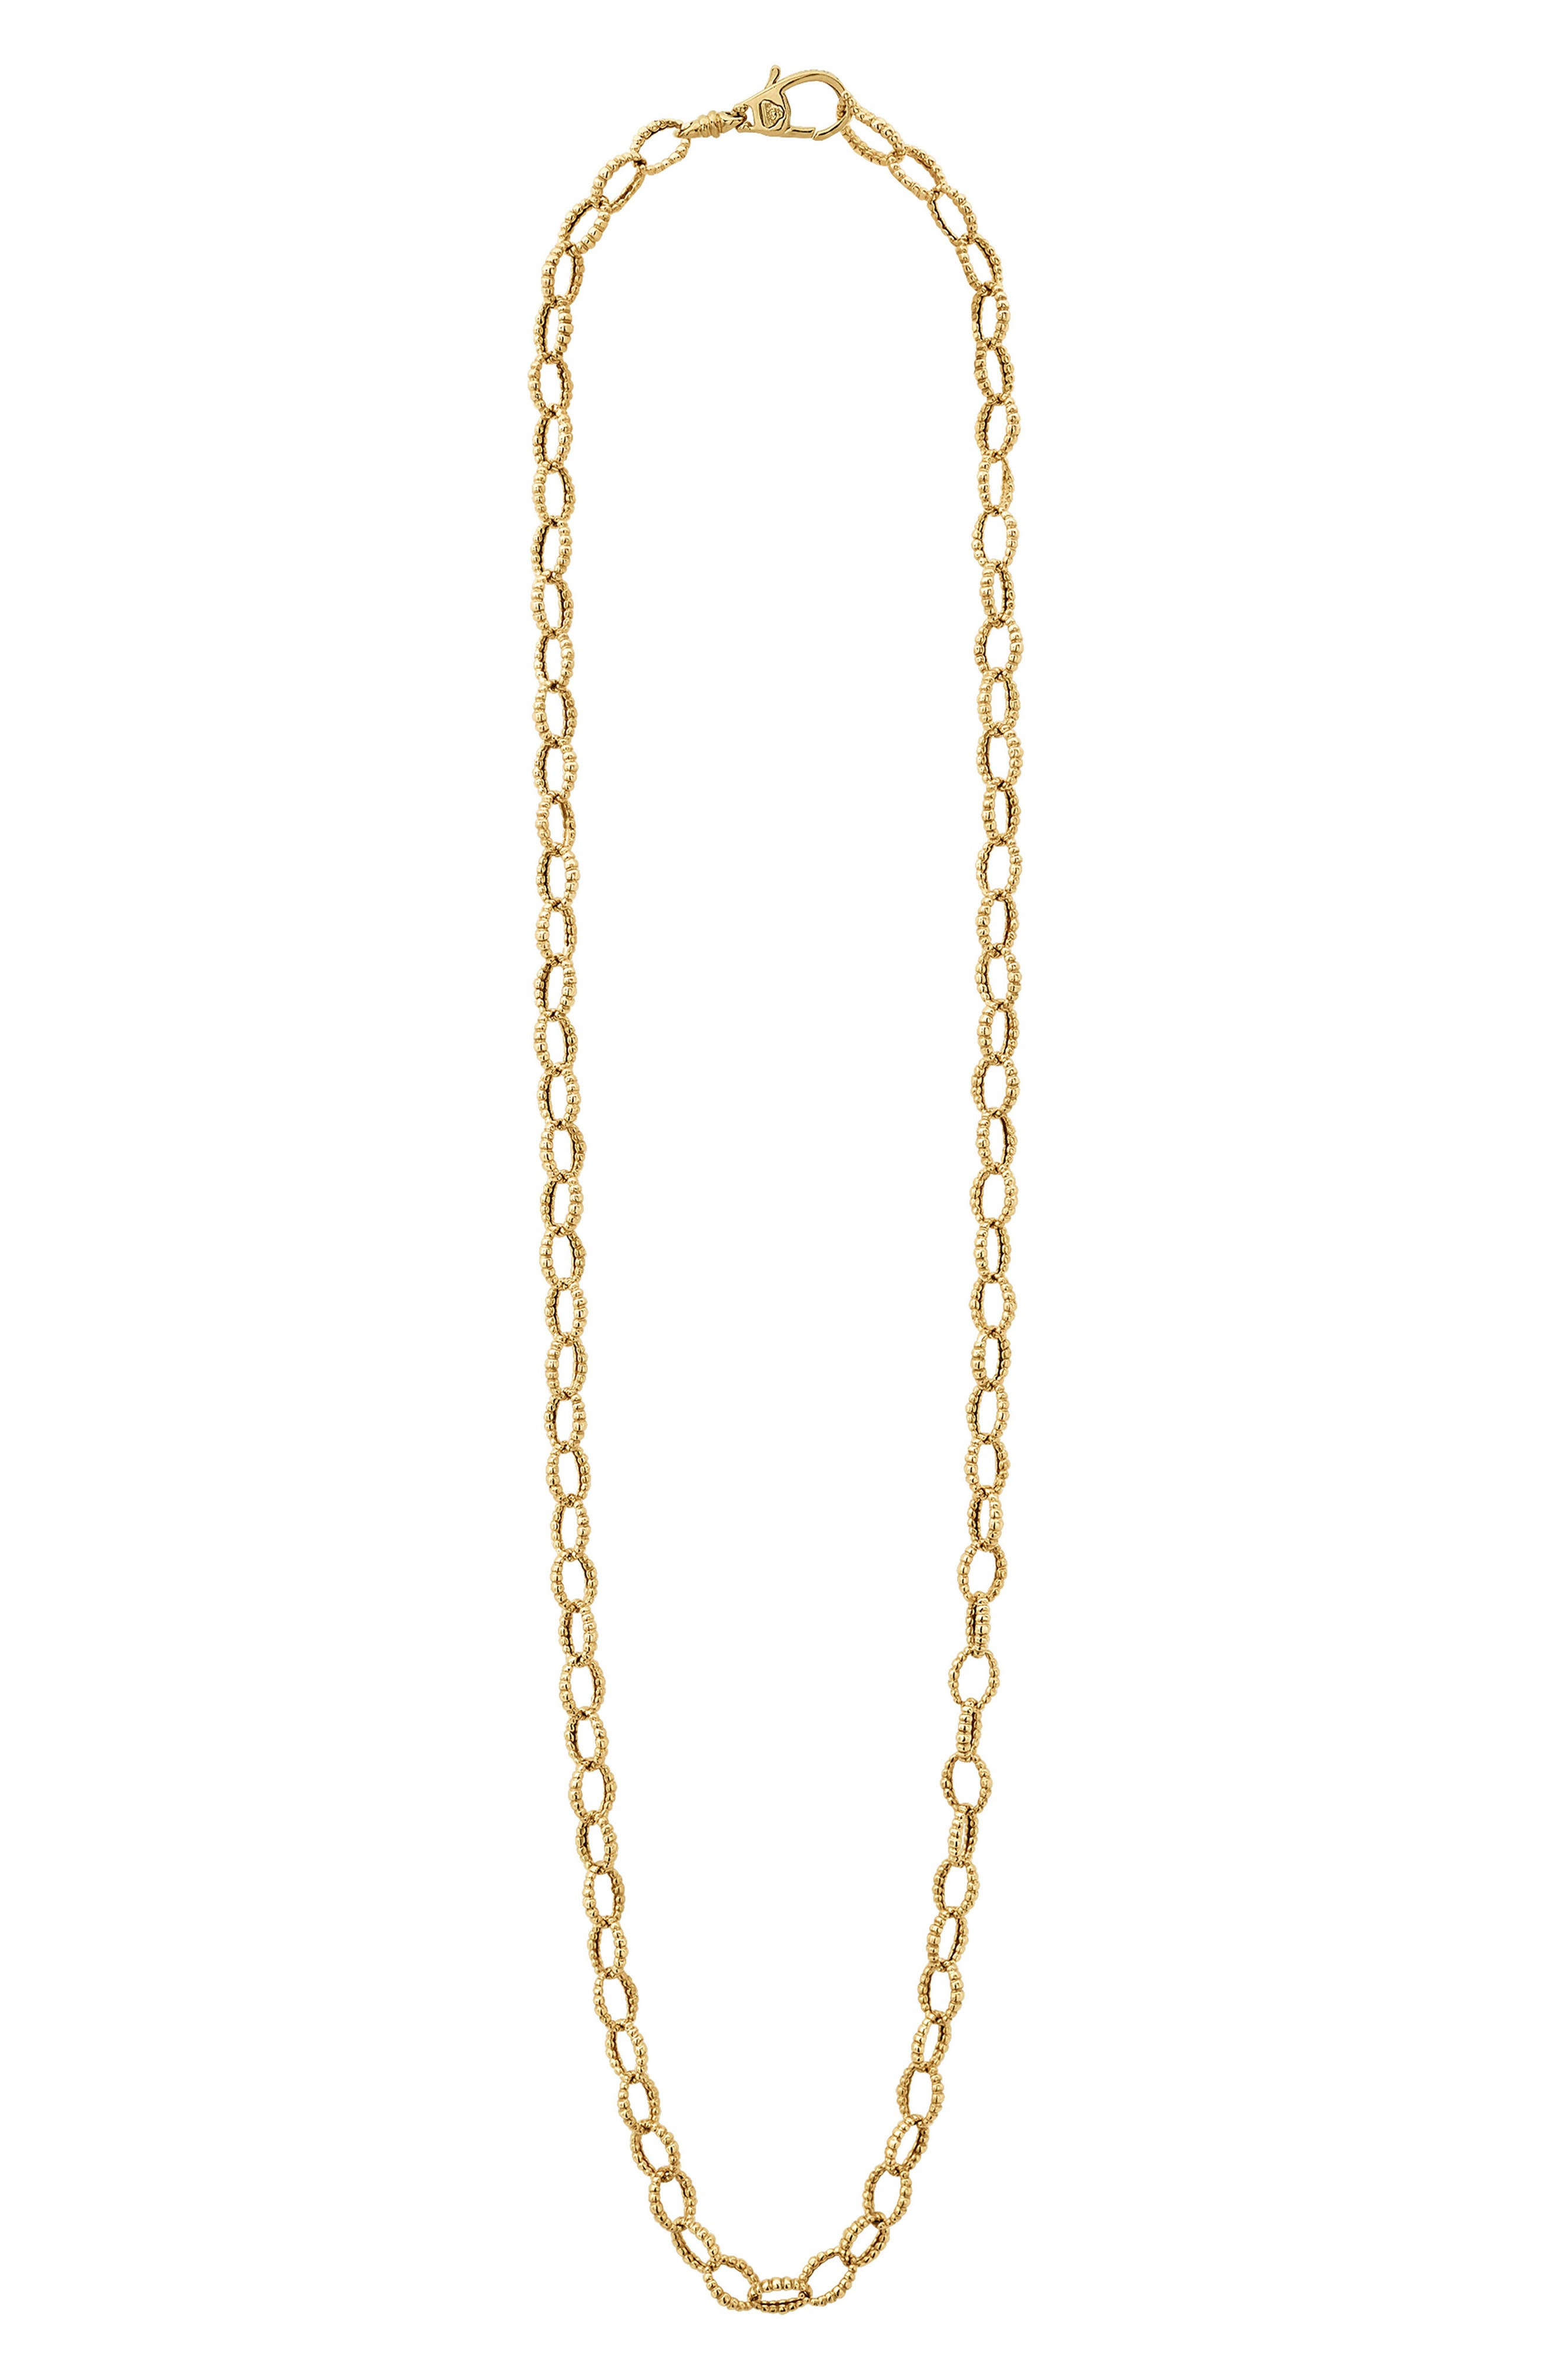 LAGOS Caviar Gold Fluted Oval Link Necklace